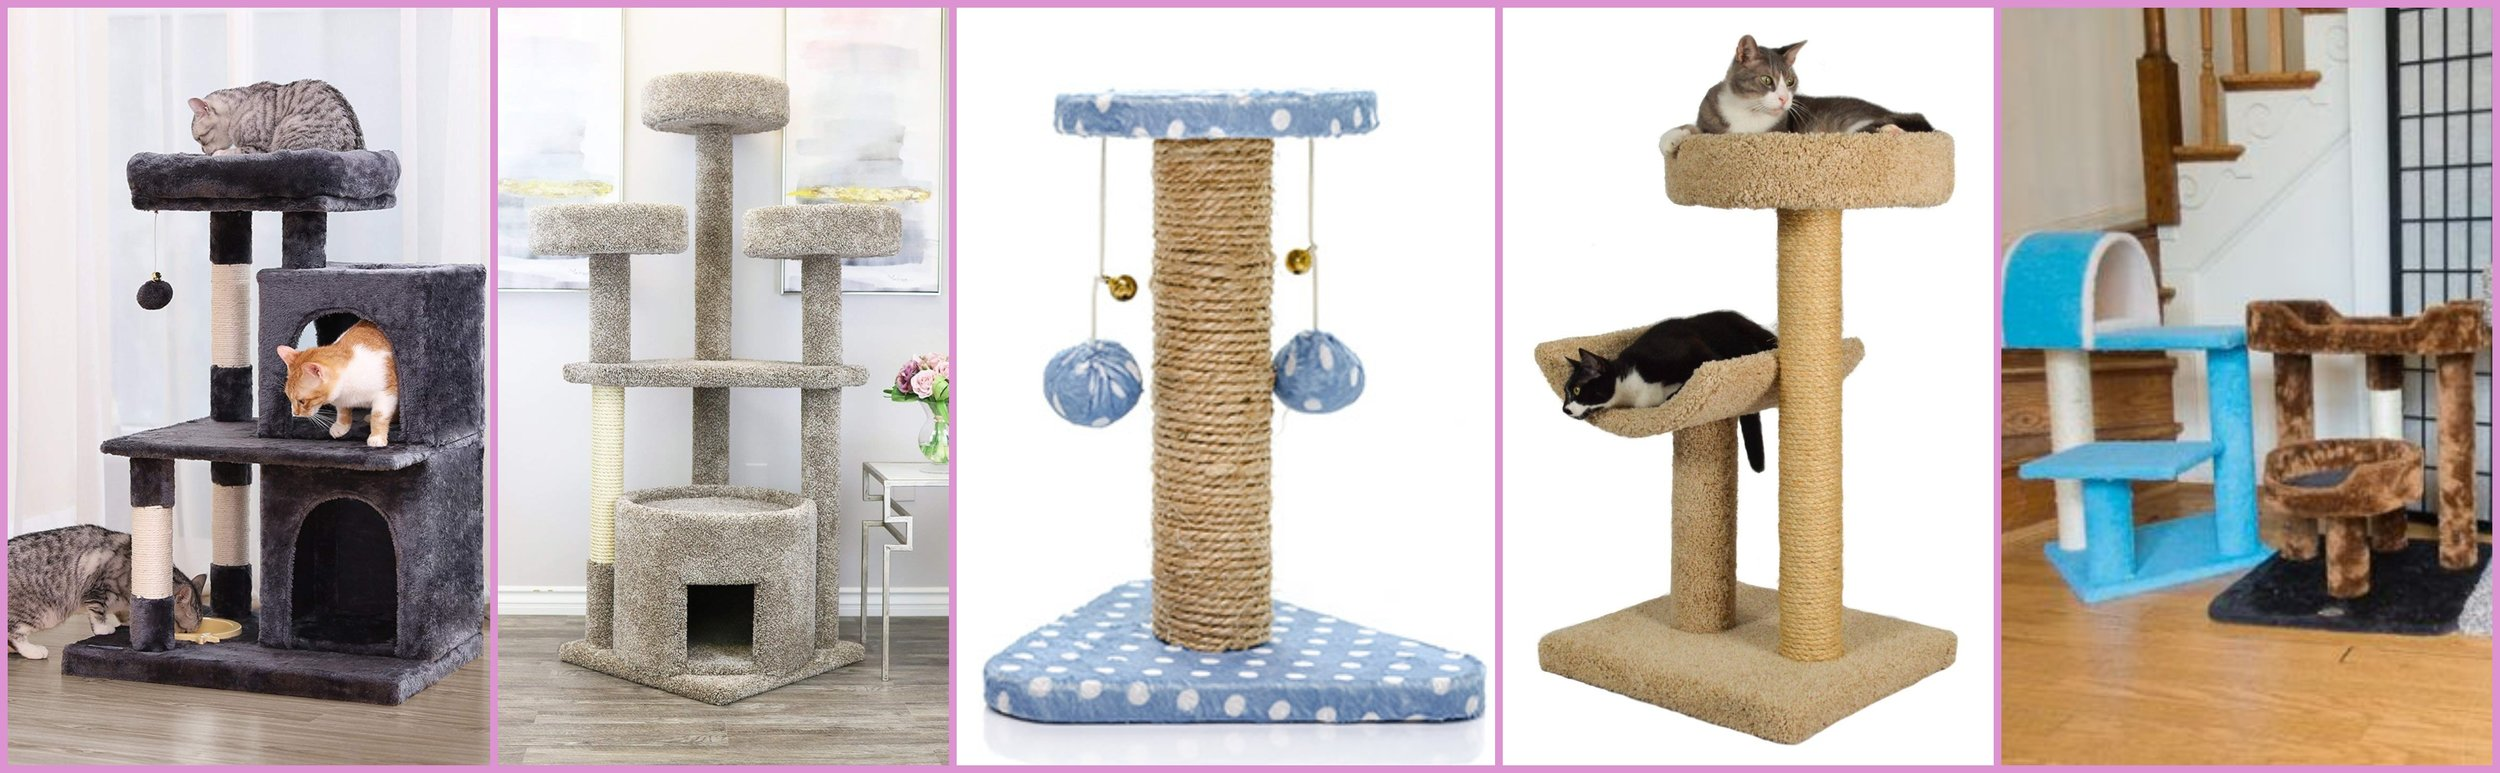 Different types of man-made Cat Trees - Provide entertainment, stimulation and keeps couches safe.